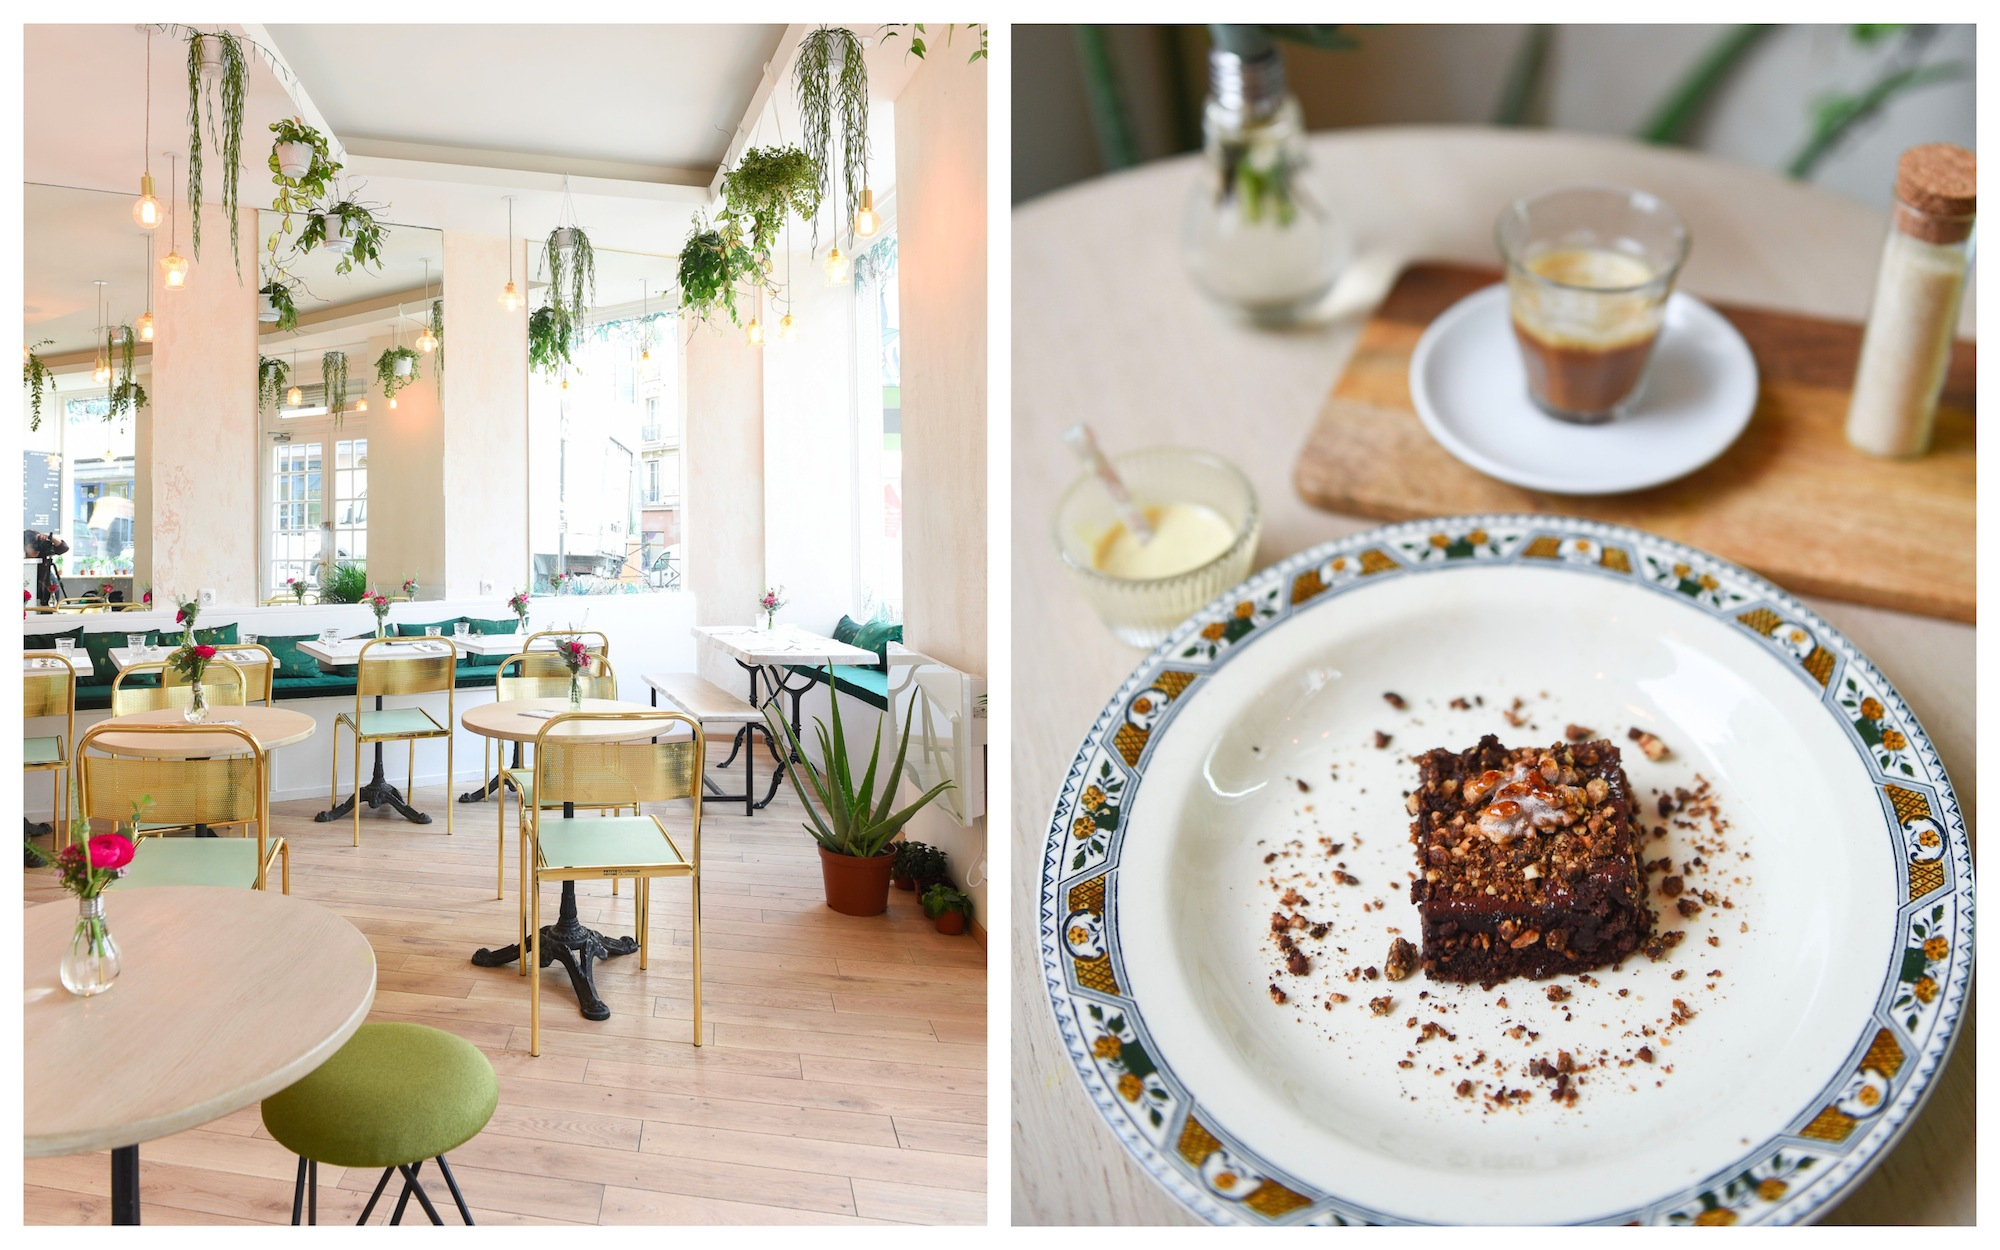 Vegan coffee shop in Paris near Montmartre is Abattoir Végétal, which does a great brunch in bright and light surroundings (left). Don't miss the wicked chocolate brownie with cream and coffee (right).